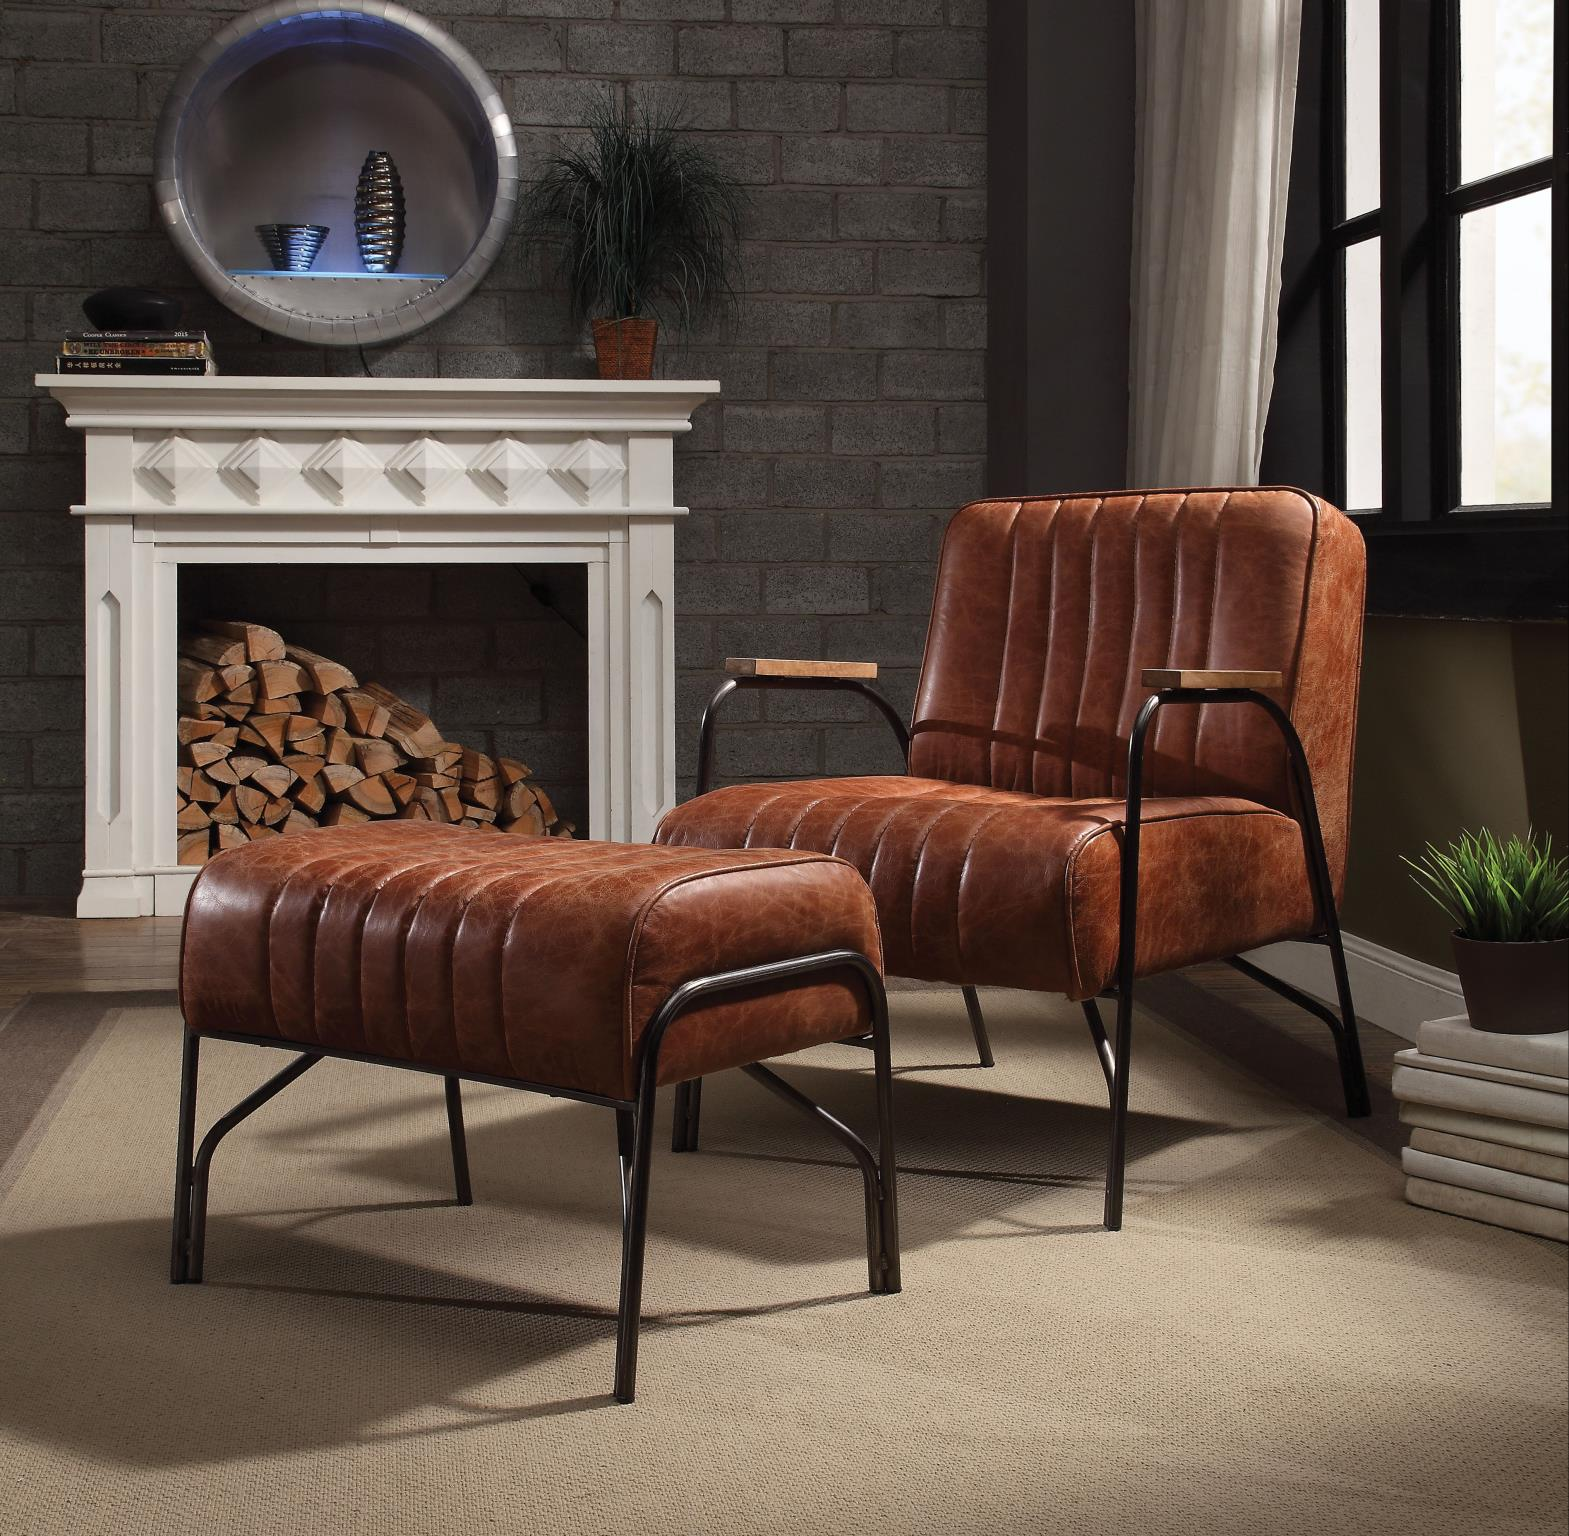 Cocoa Chair and Ottoman